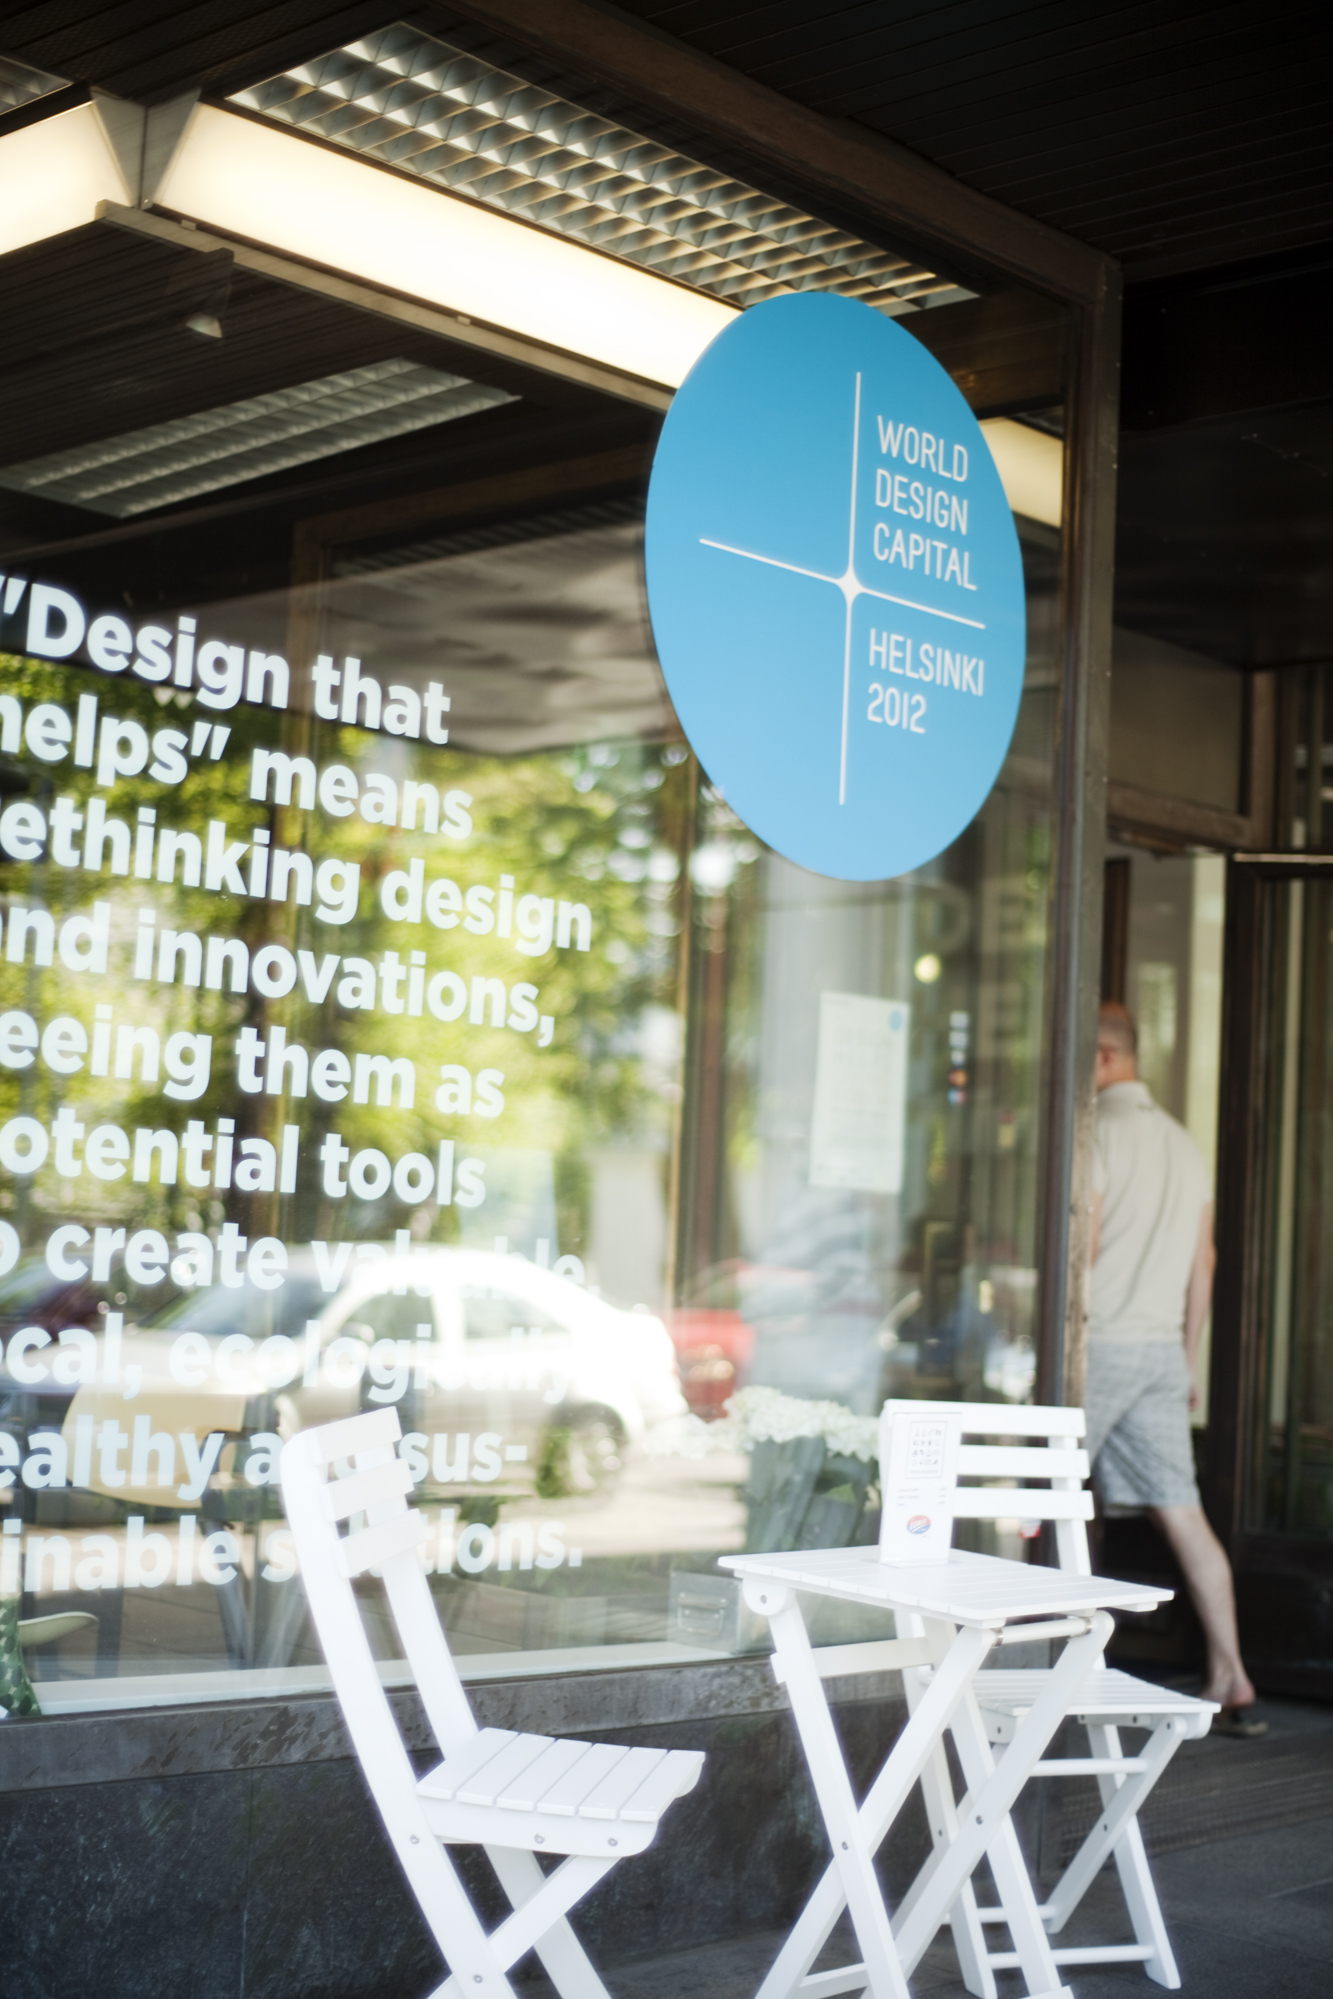 Our September newsletter tells you about a new online toolkit for public service development and the Matinkylä citizen service centre. We applaud World Design Capital Helsinki 2012, which has won a pr...